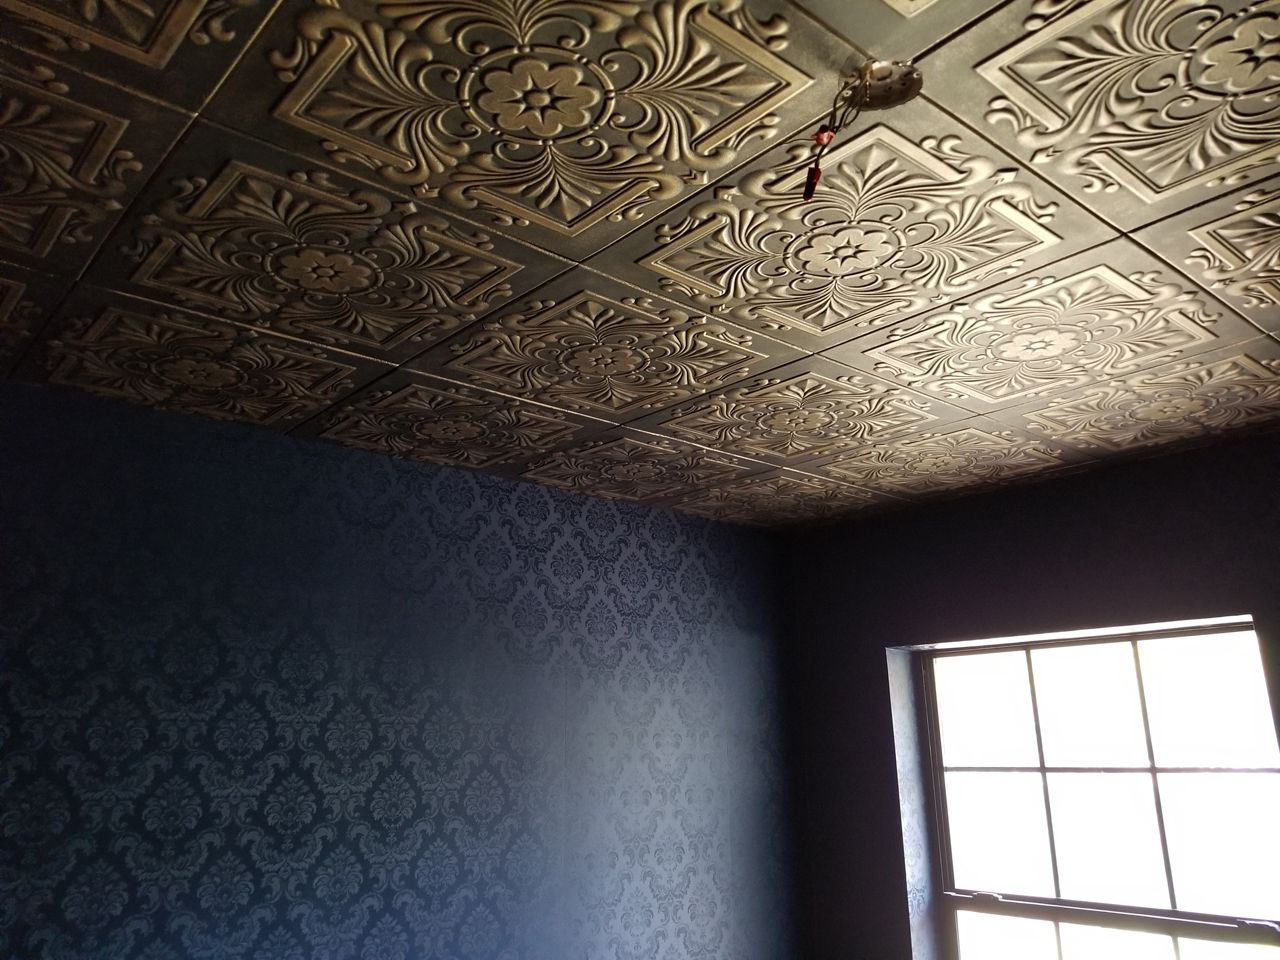 Solved What To Do About Water Stains On The Ceiling Water Stain On Ceiling Cleaning Painted Walls Cleaning Ceilings